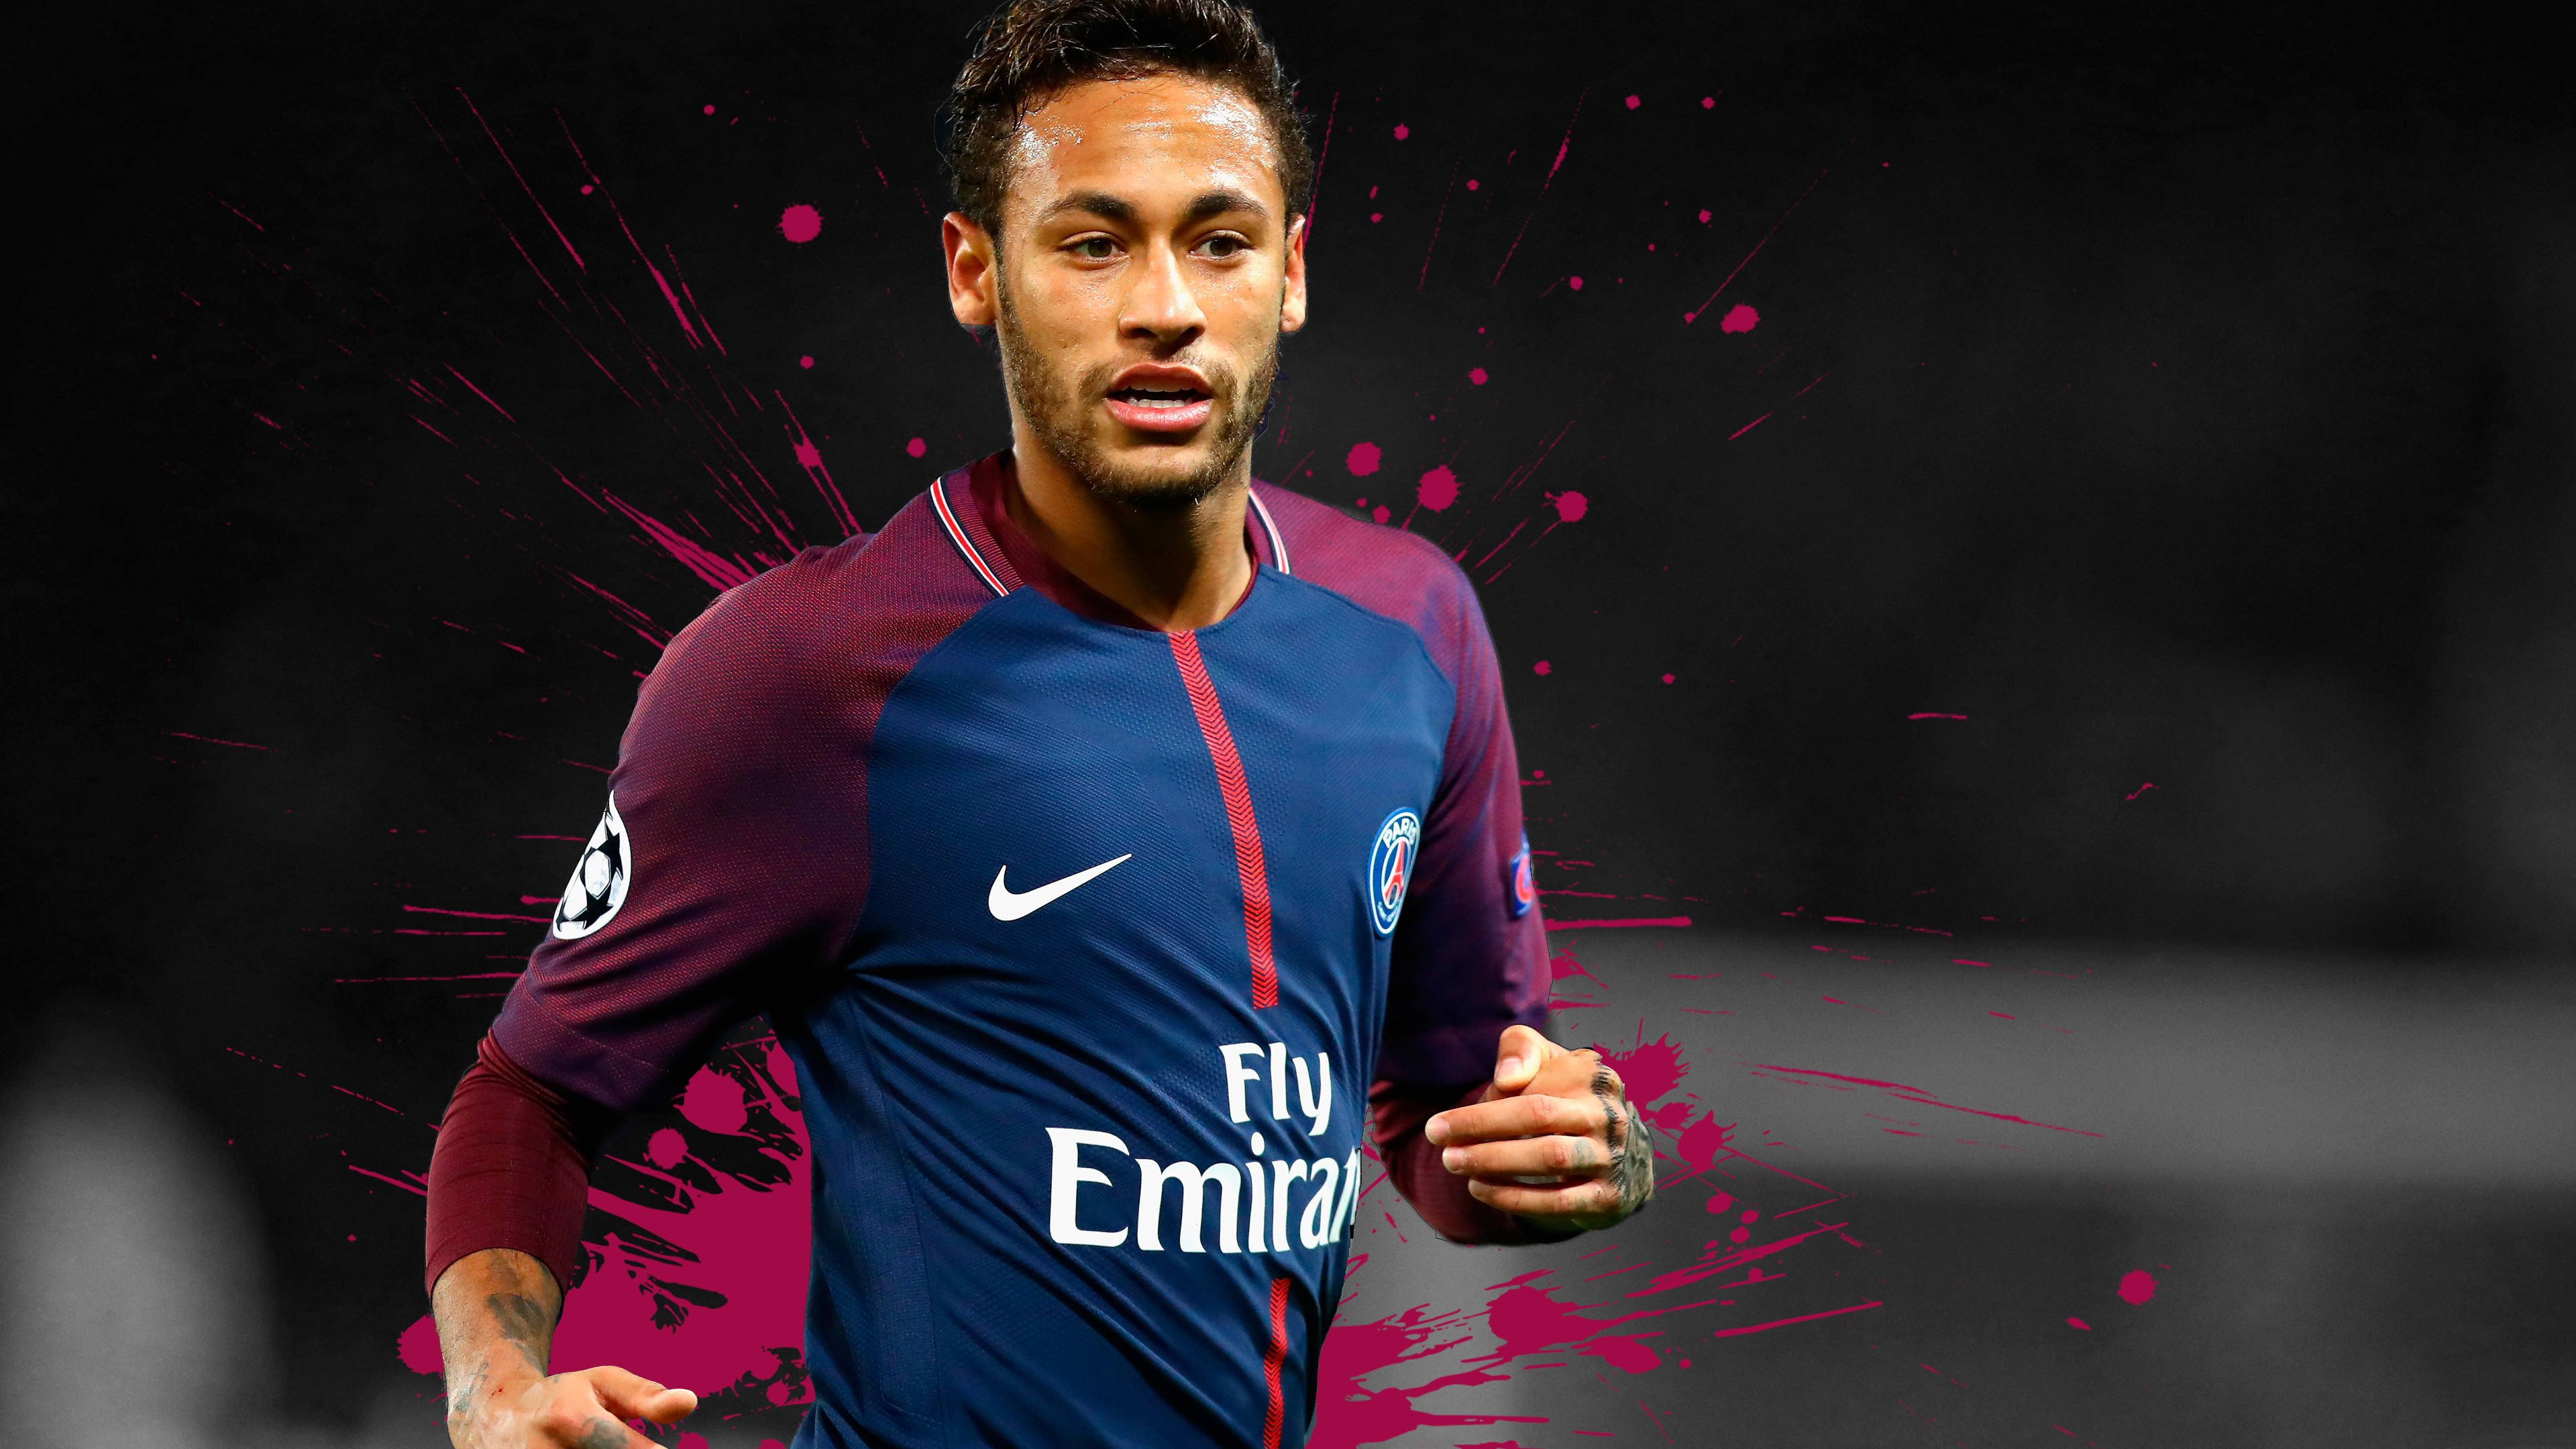 Neymar PSG 4K Wallpaper HD Desktop-3840x2160